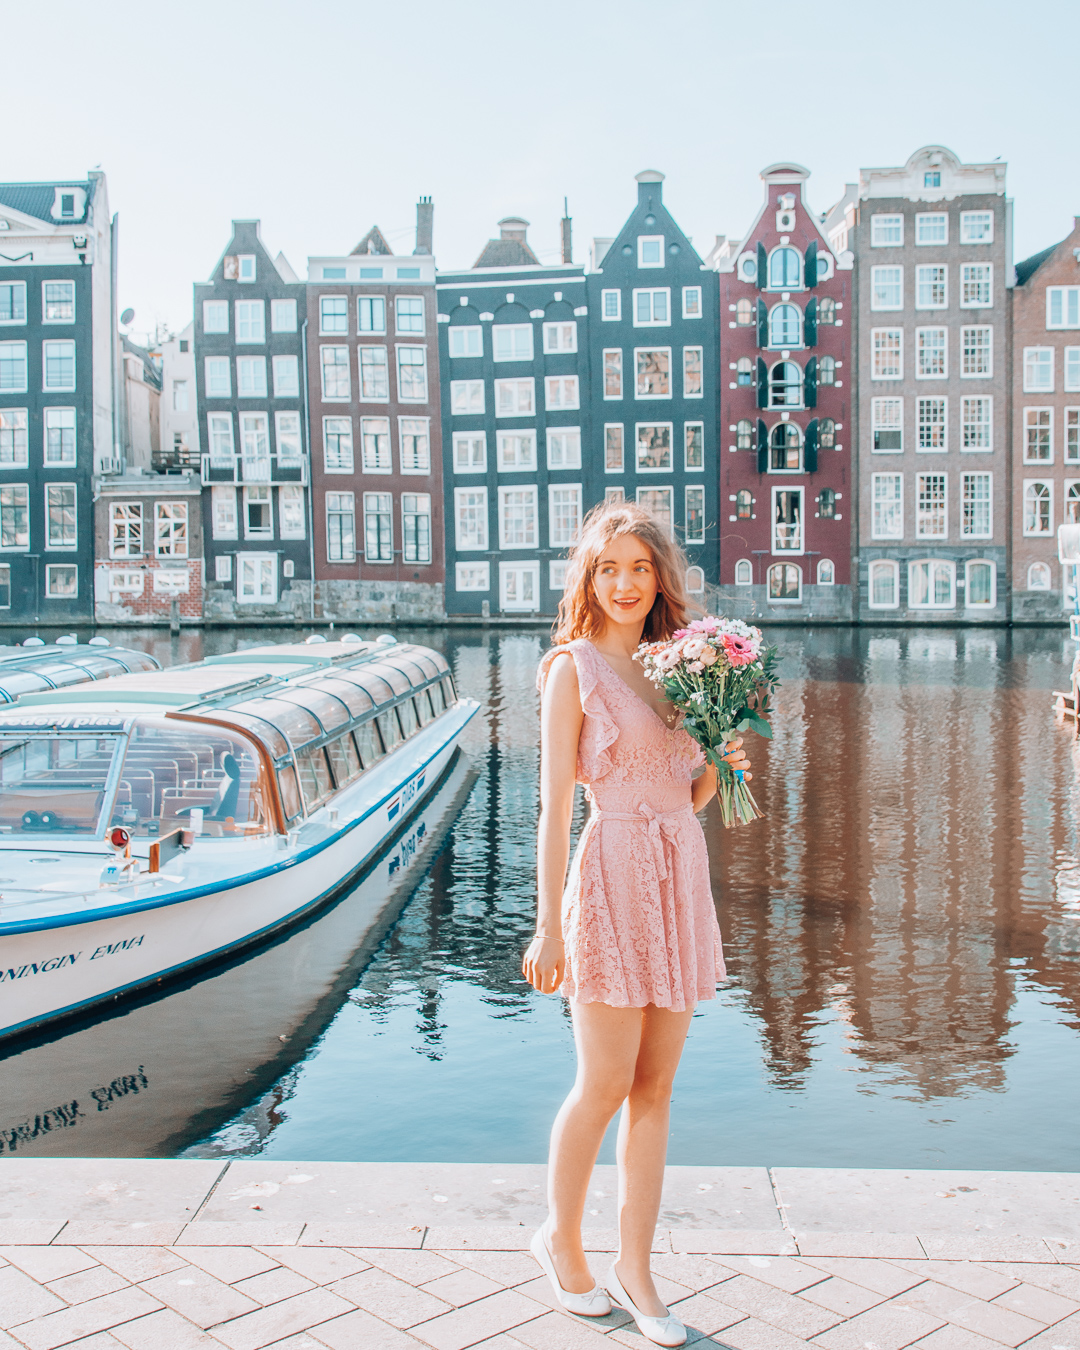 Girl with flowers at Damrak